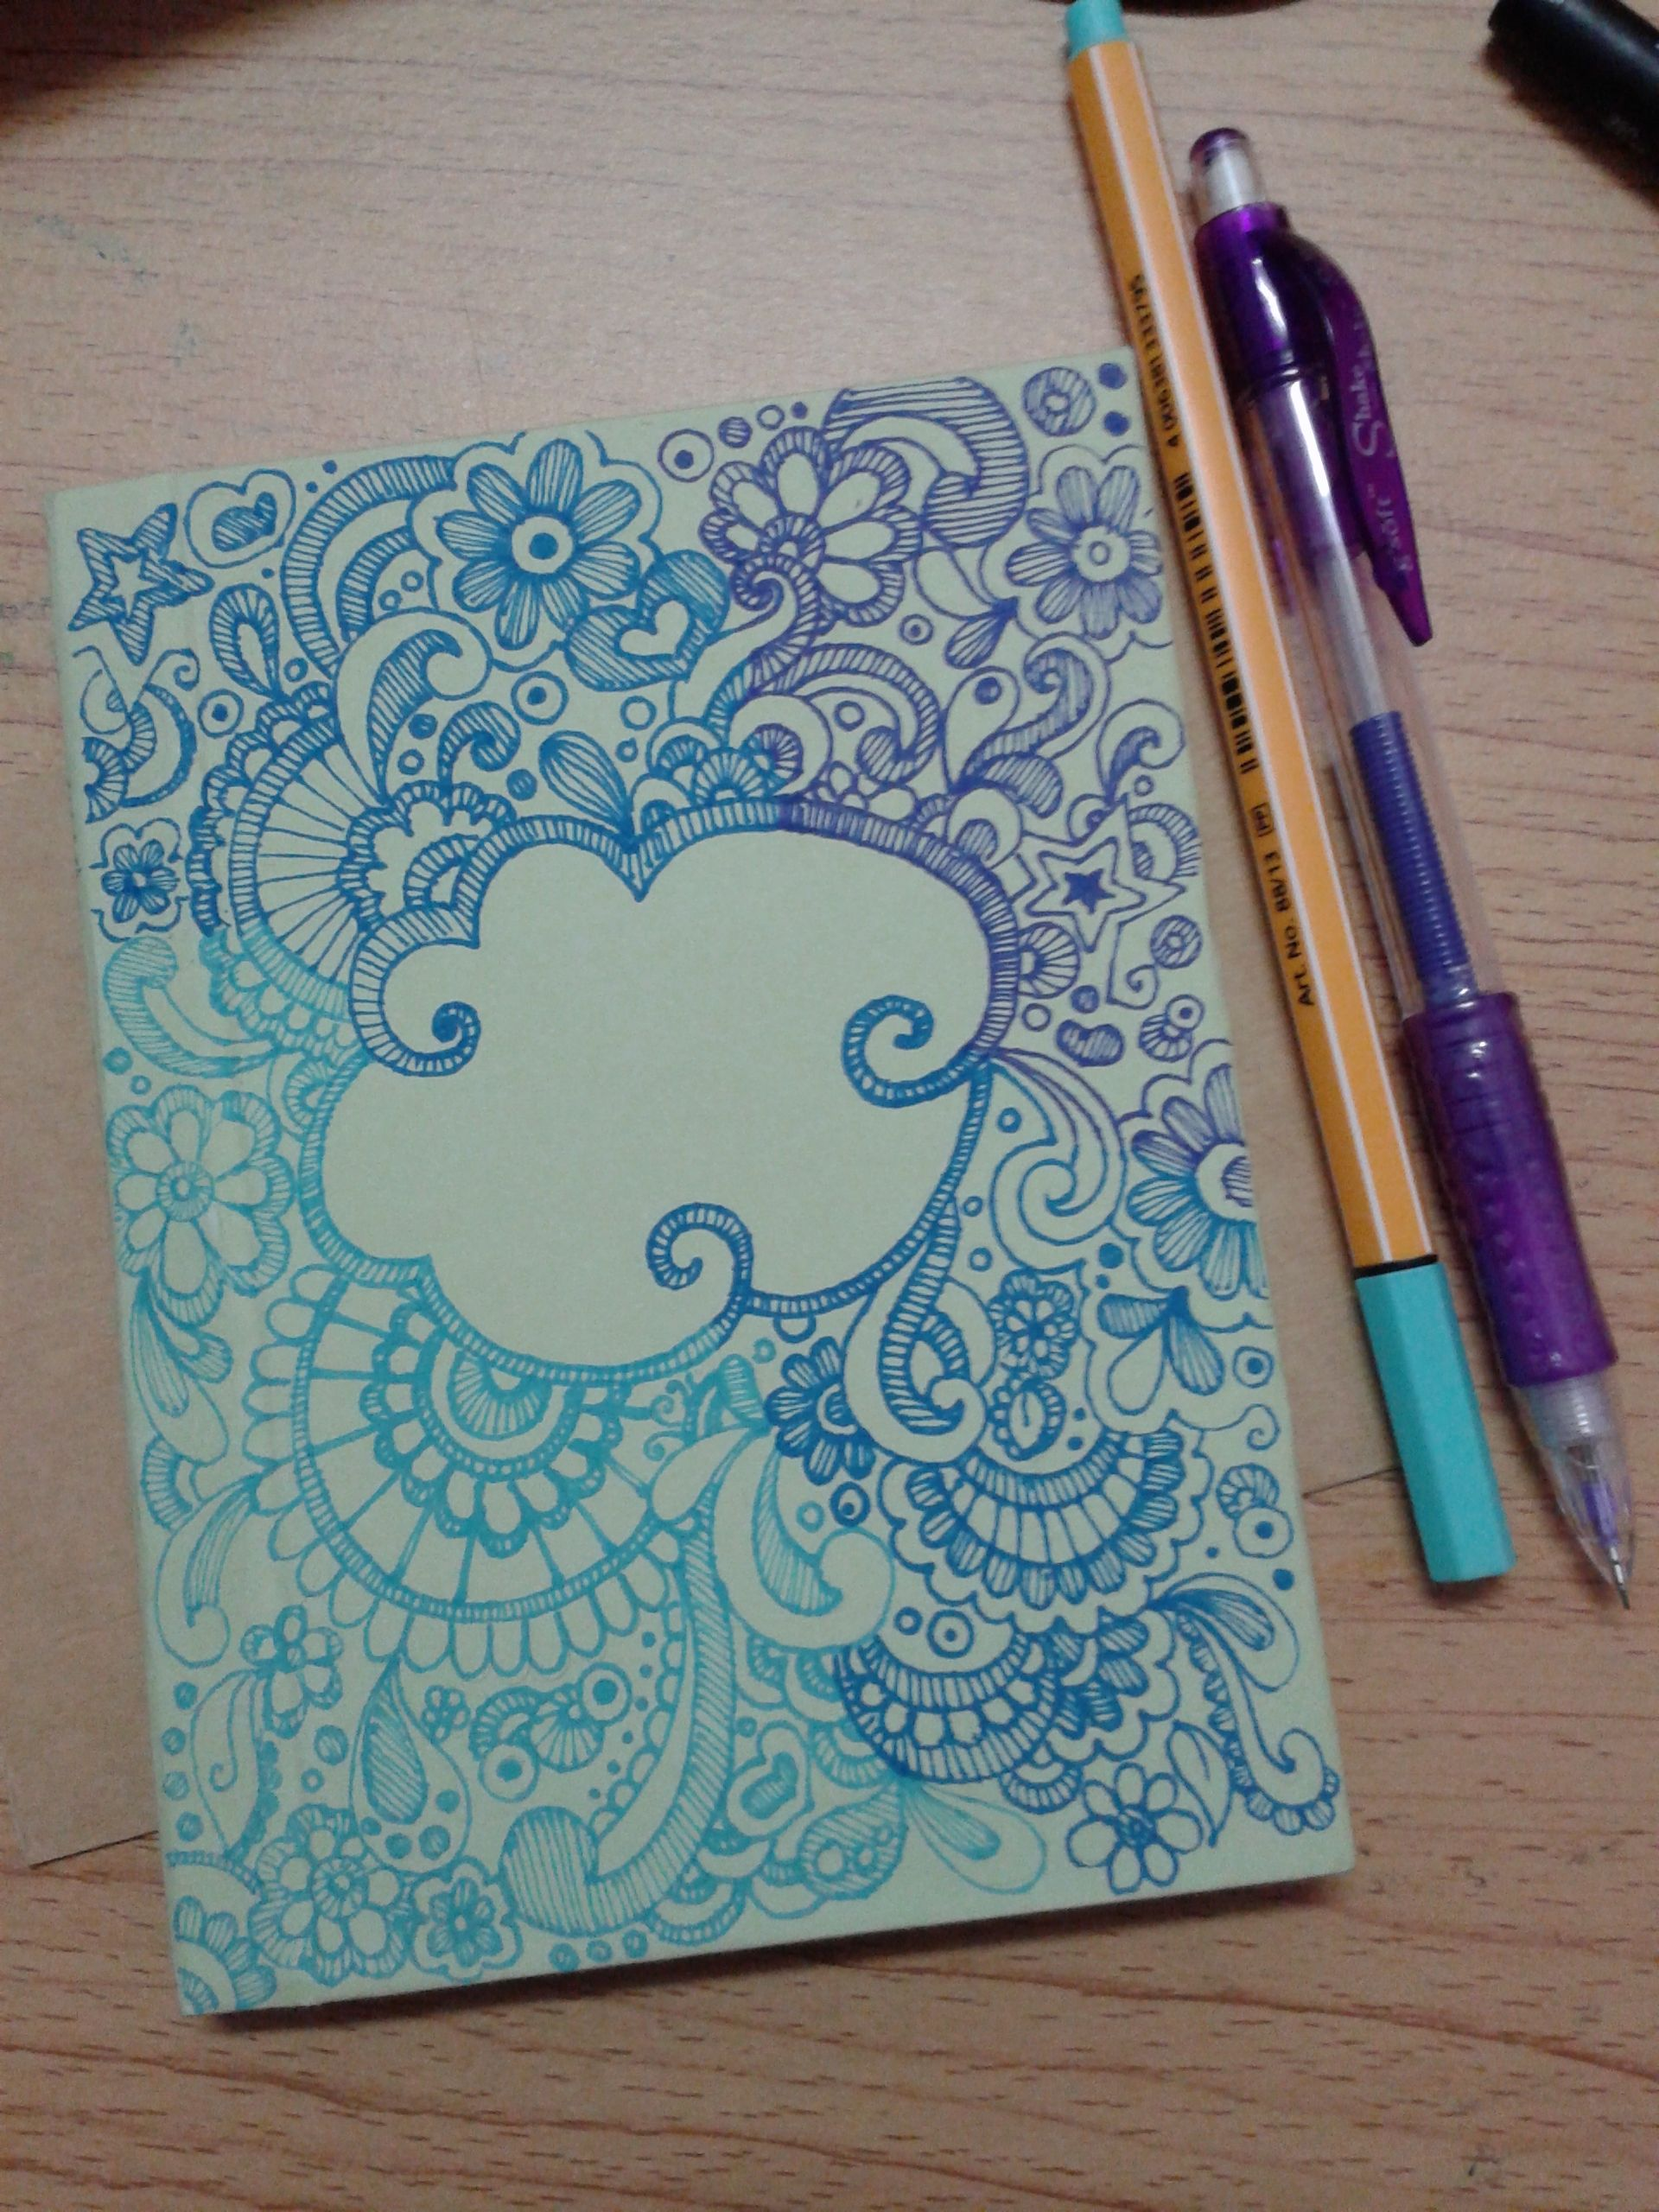 Book Cover School Supplies : Doodle for diy notebook cover my work pinterest